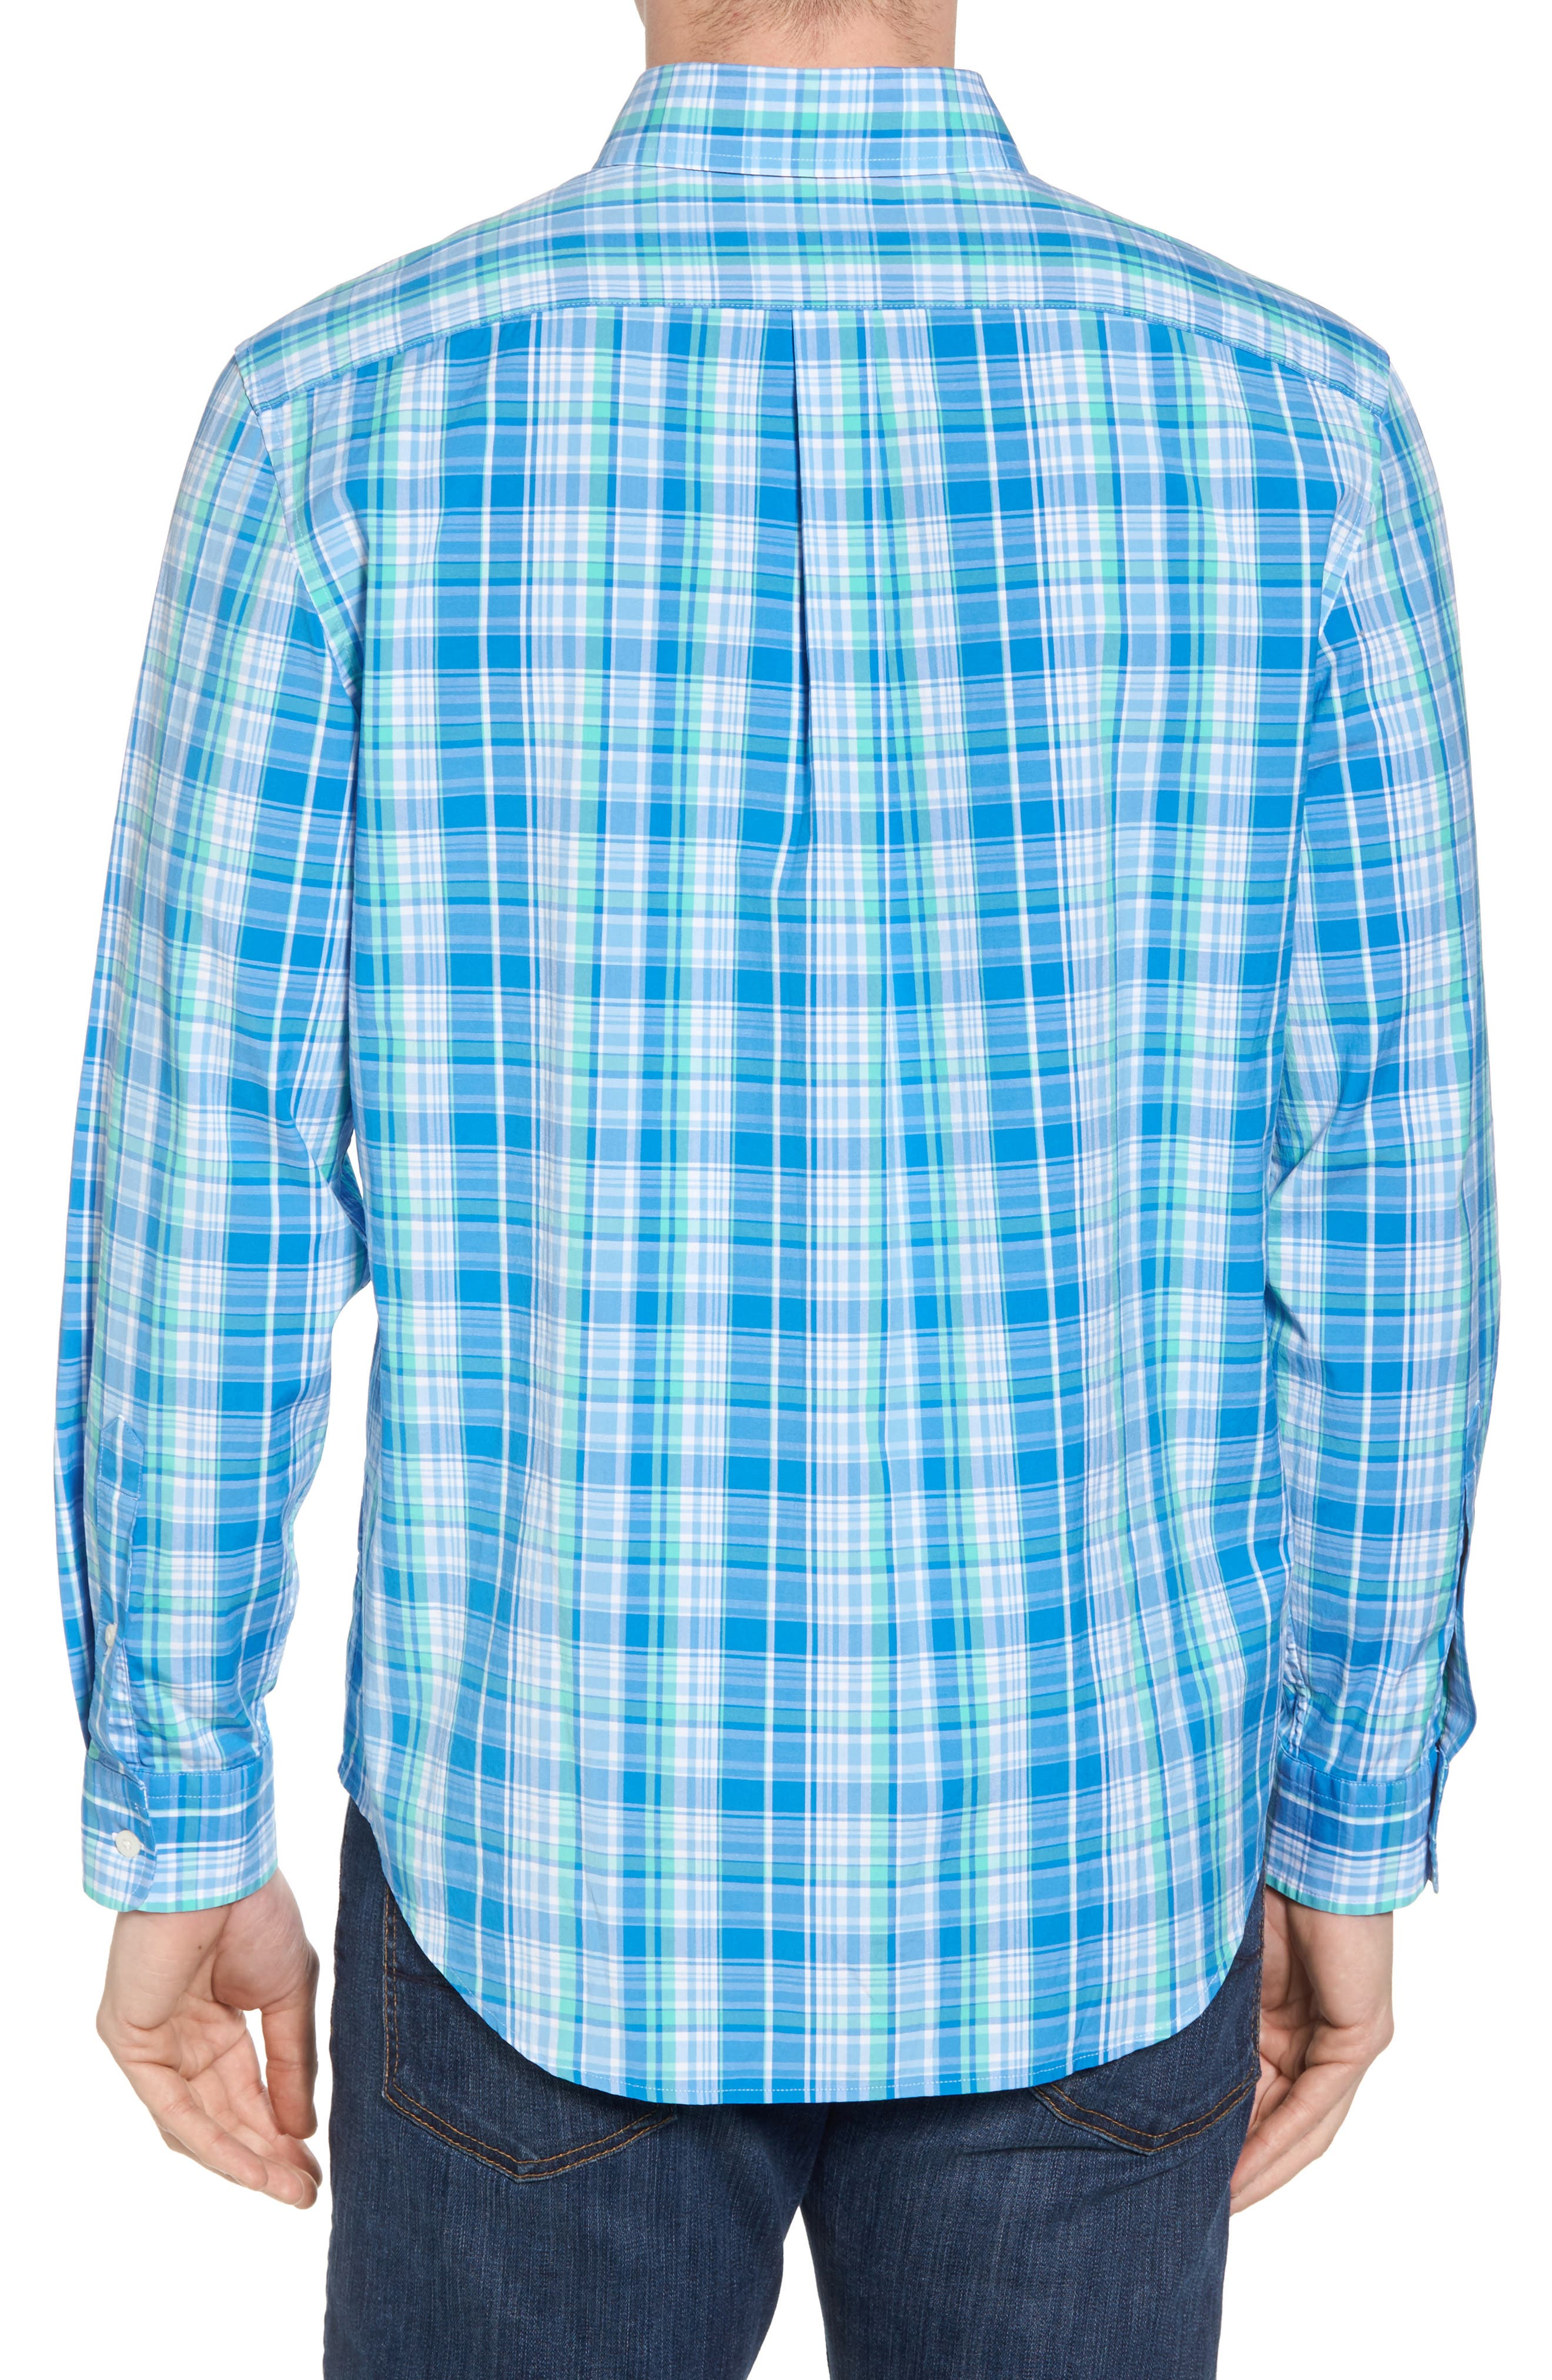 Bougainvillea Classic Fit Plaid Sport Shirt,                             Alternate thumbnail 2, color,                             Antigua Green